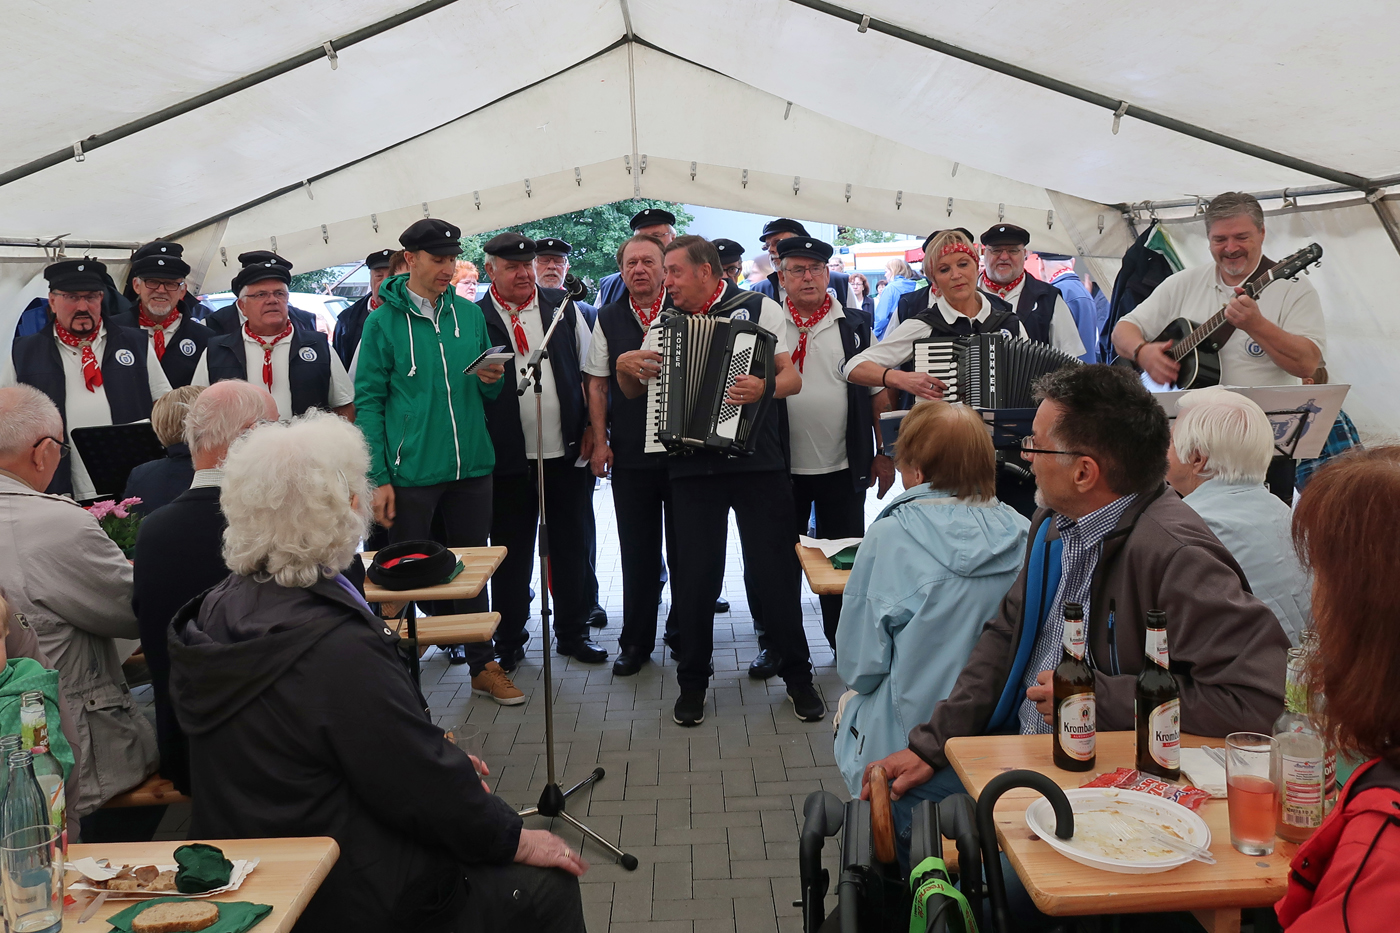 11.08.2017 - Grillfest in Stade Hahle. Dr. Christian Pape hat bei dem Lied.....